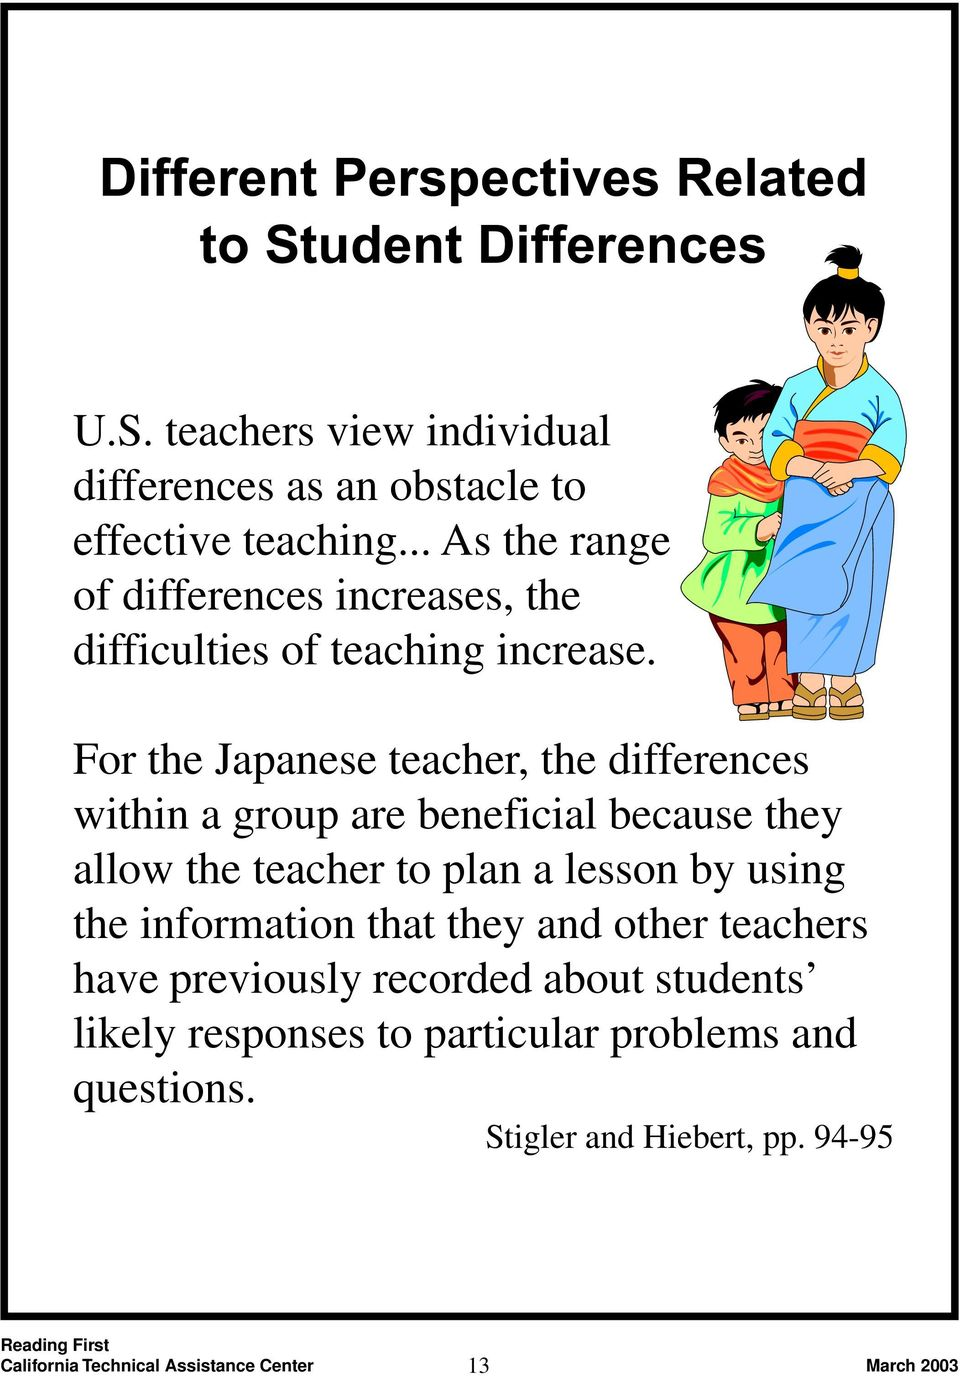 For the Japanese teacher, the differences within a group are beneficial because they allow the teacher to plan a lesson by using